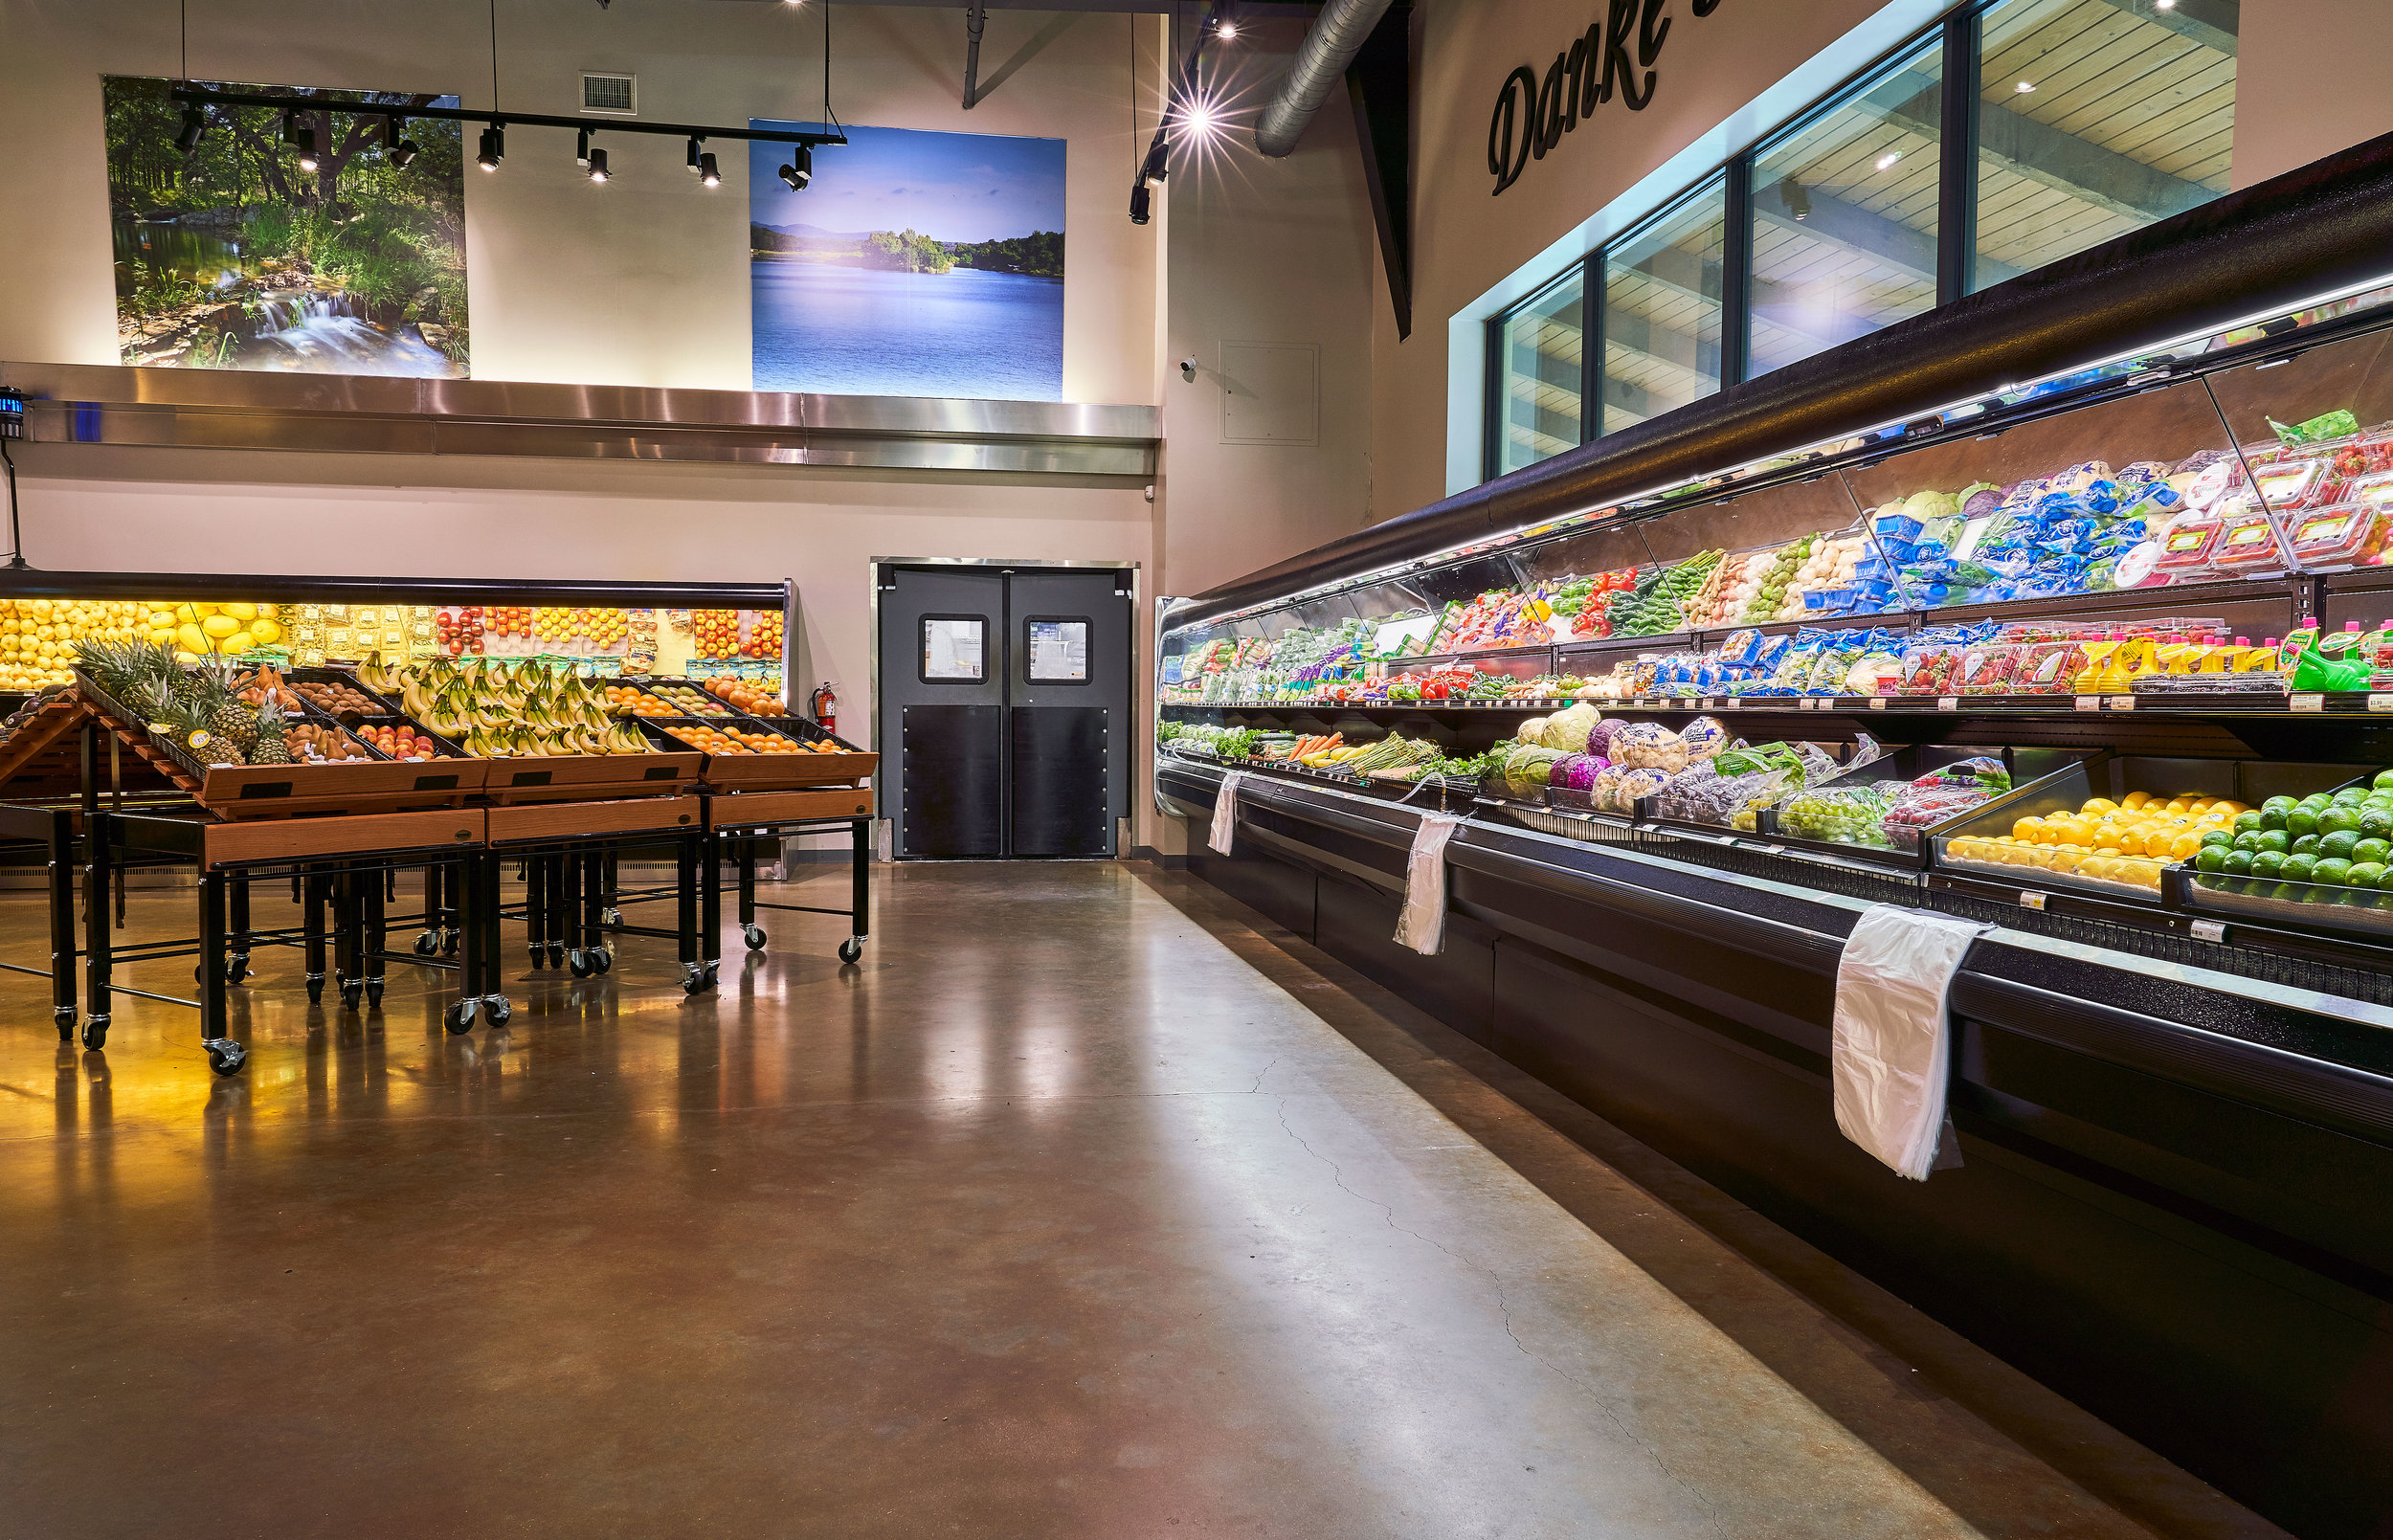 Bayside's Produce Department featuring a wide variety of fresh fruits & vegetables.